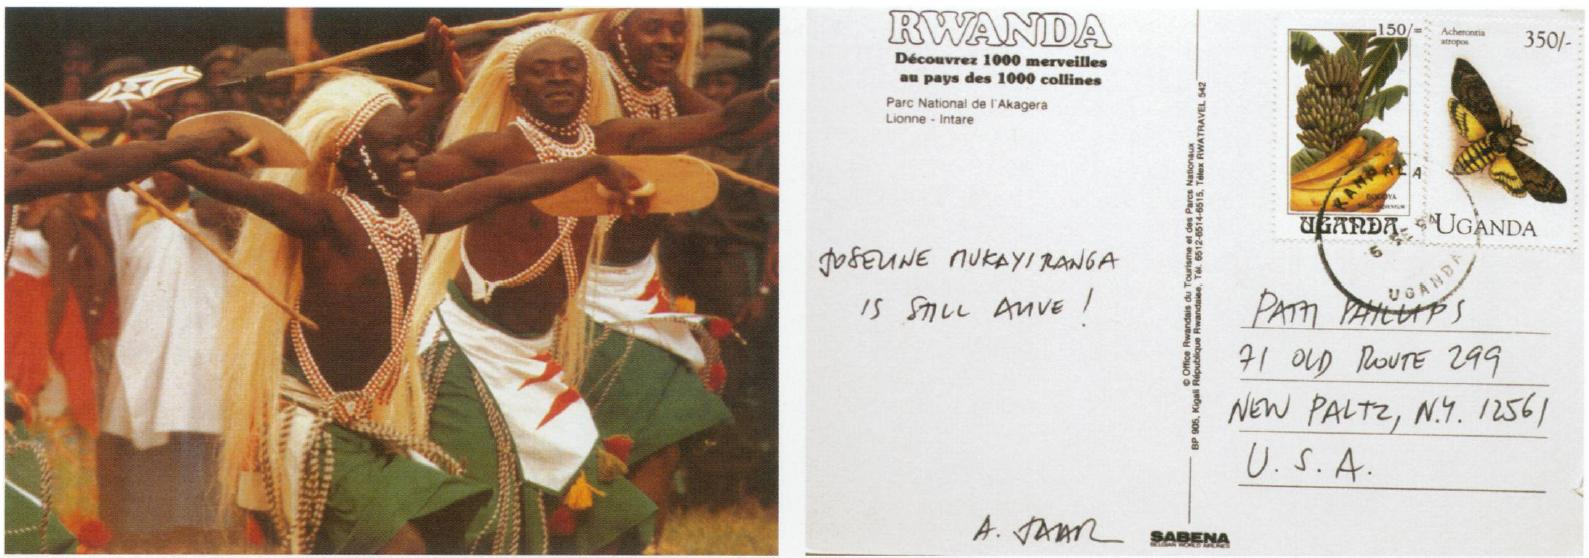 deogratias and the representation of the rwandan genocide to sp awareness about the genocide by speaking for survivors while the pleasant fronts of the postcards speak to the fact that the rwandan genocide